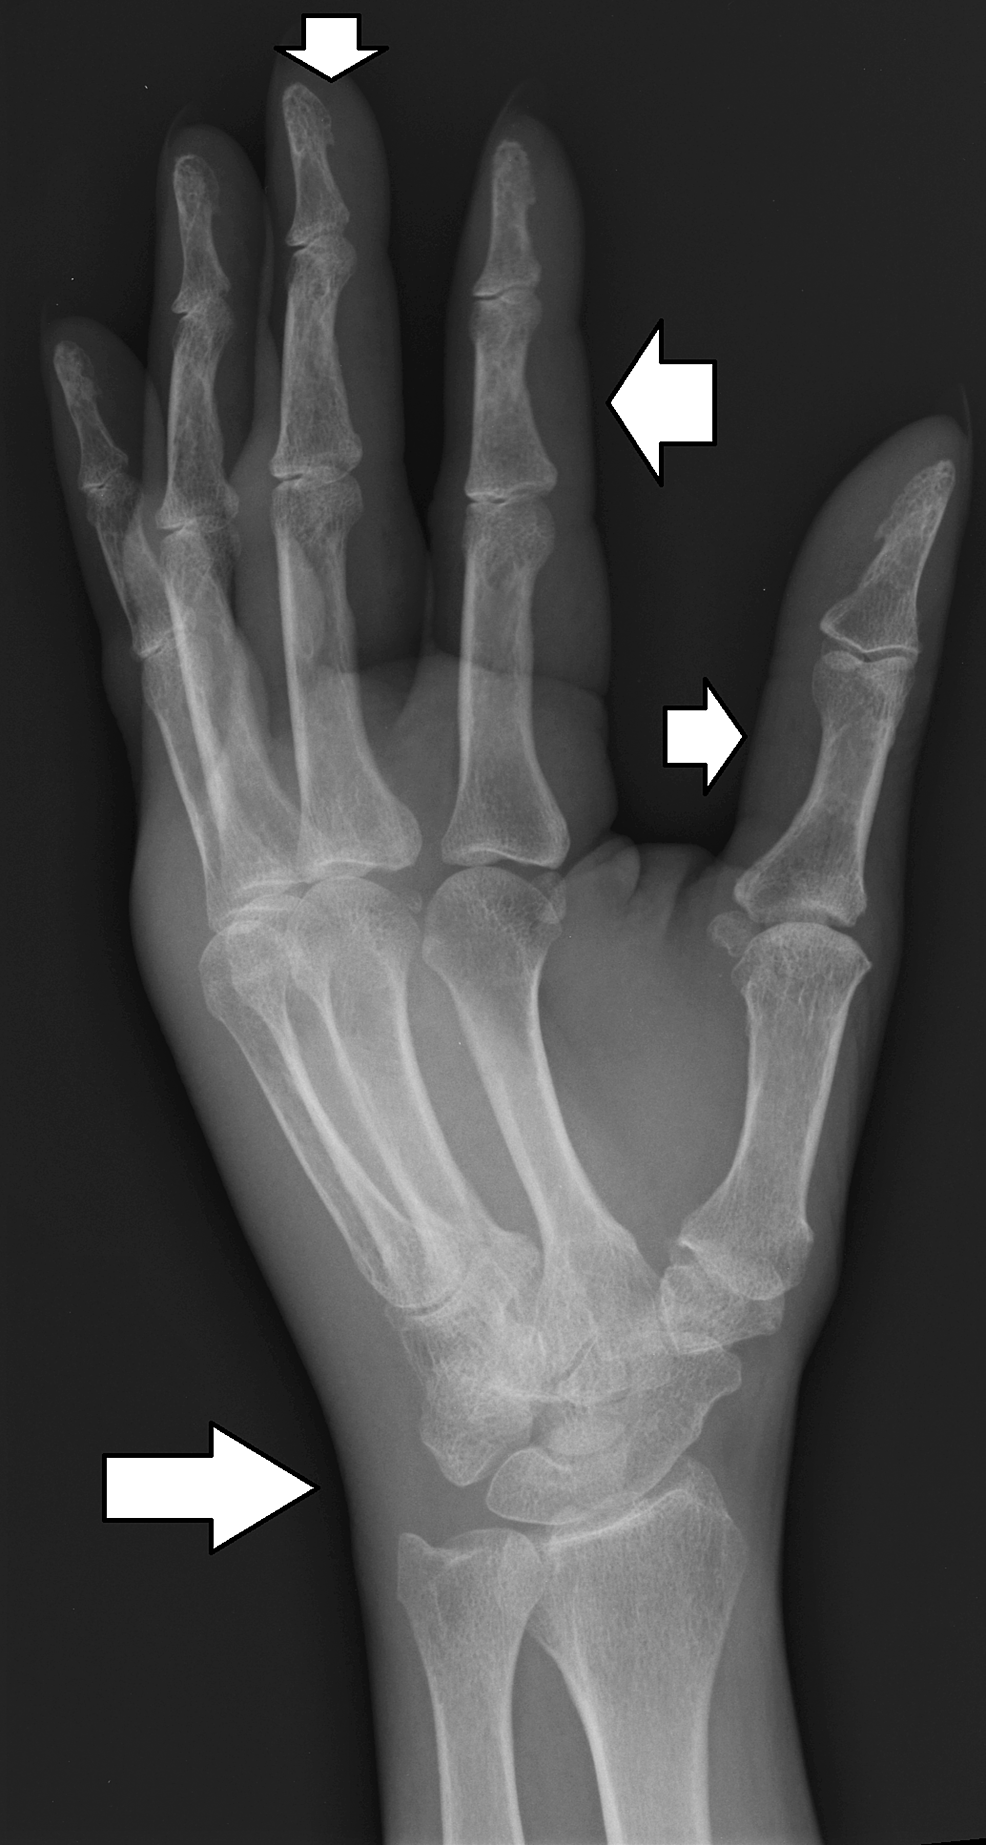 X-ray-of-the-wrist-joint-showing-soft-tissue-swelling-in-the-hand-and-at-the-wrist-joint